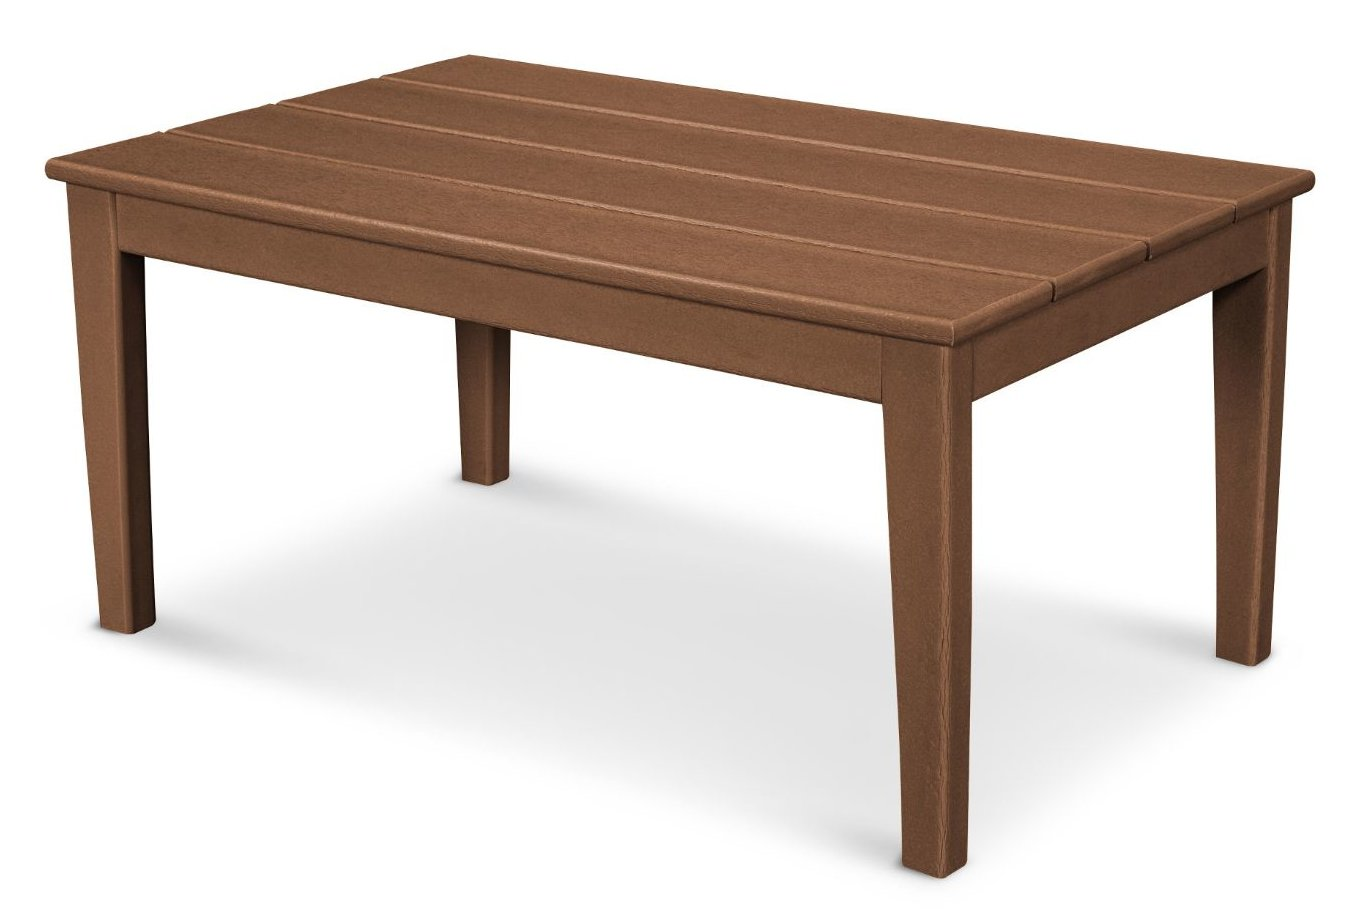 polywood newport coffee table middletown accent patio battery power pack for lamp folding glass stackable tables ikea small round side wood furniture companies occasional living